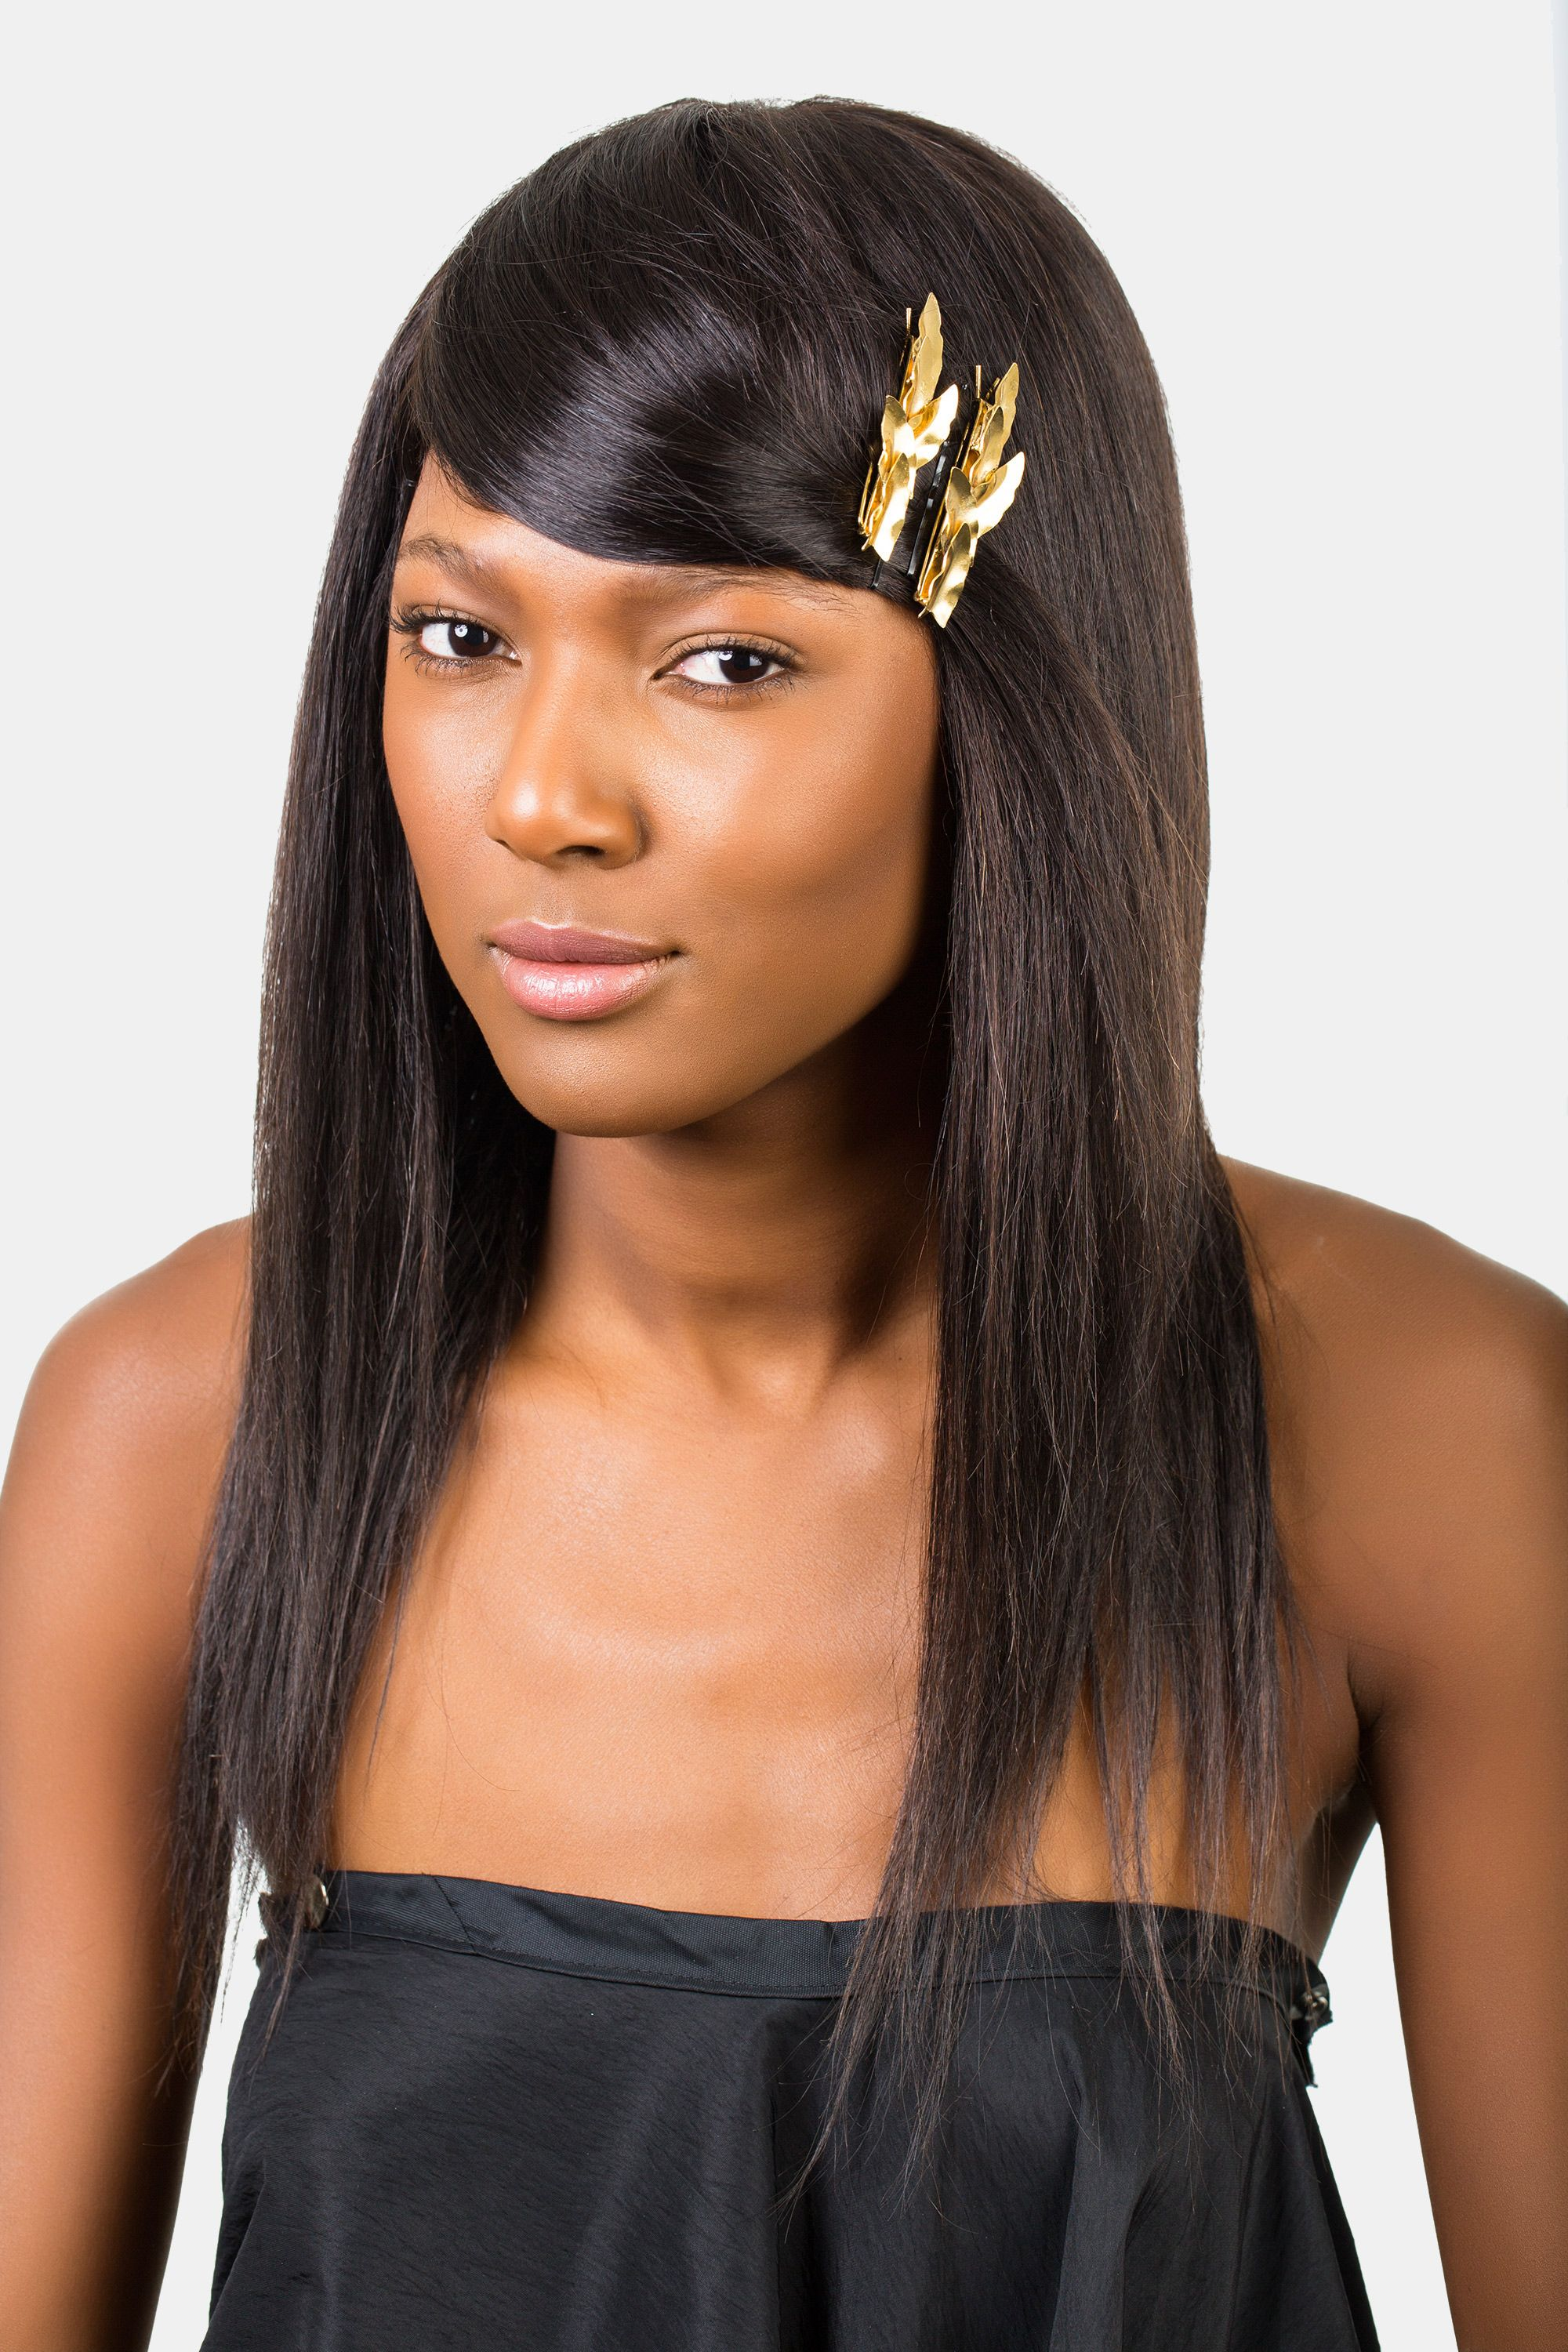 herstylecode 8 How to Wear Barrettes, 10 Easy Ways to Style Barrettes